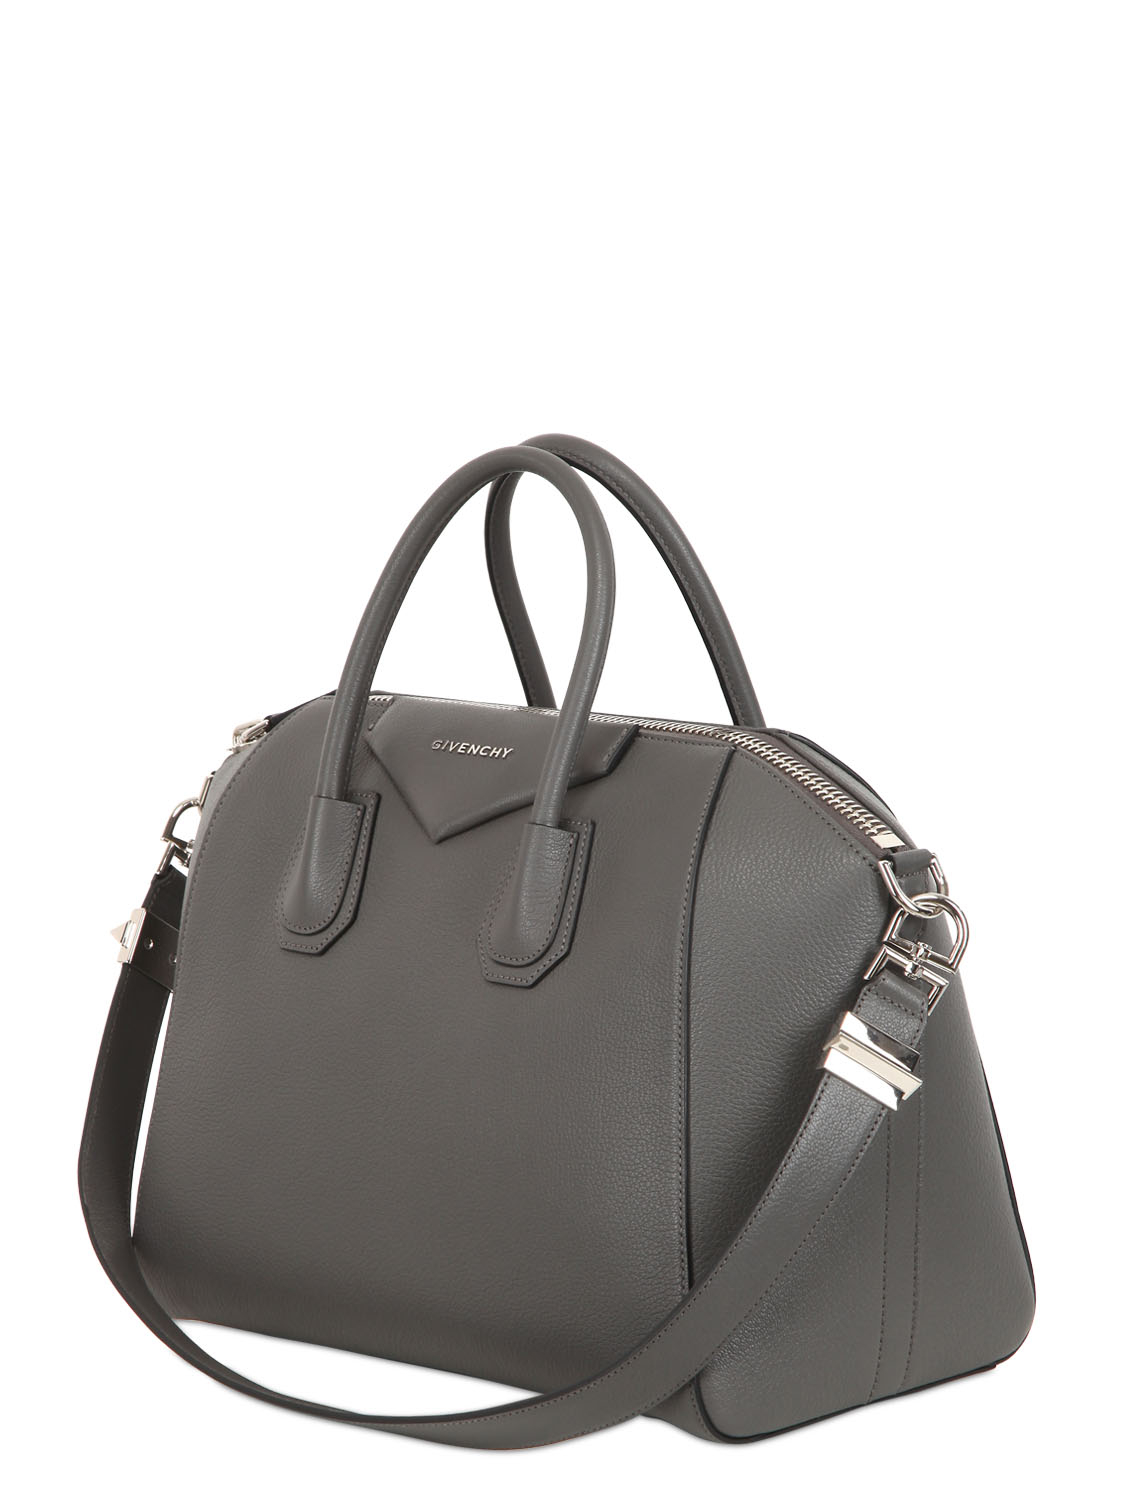 64555d49f7 Lyst - Givenchy Medium Antigona Grained Leather Bag in Gray